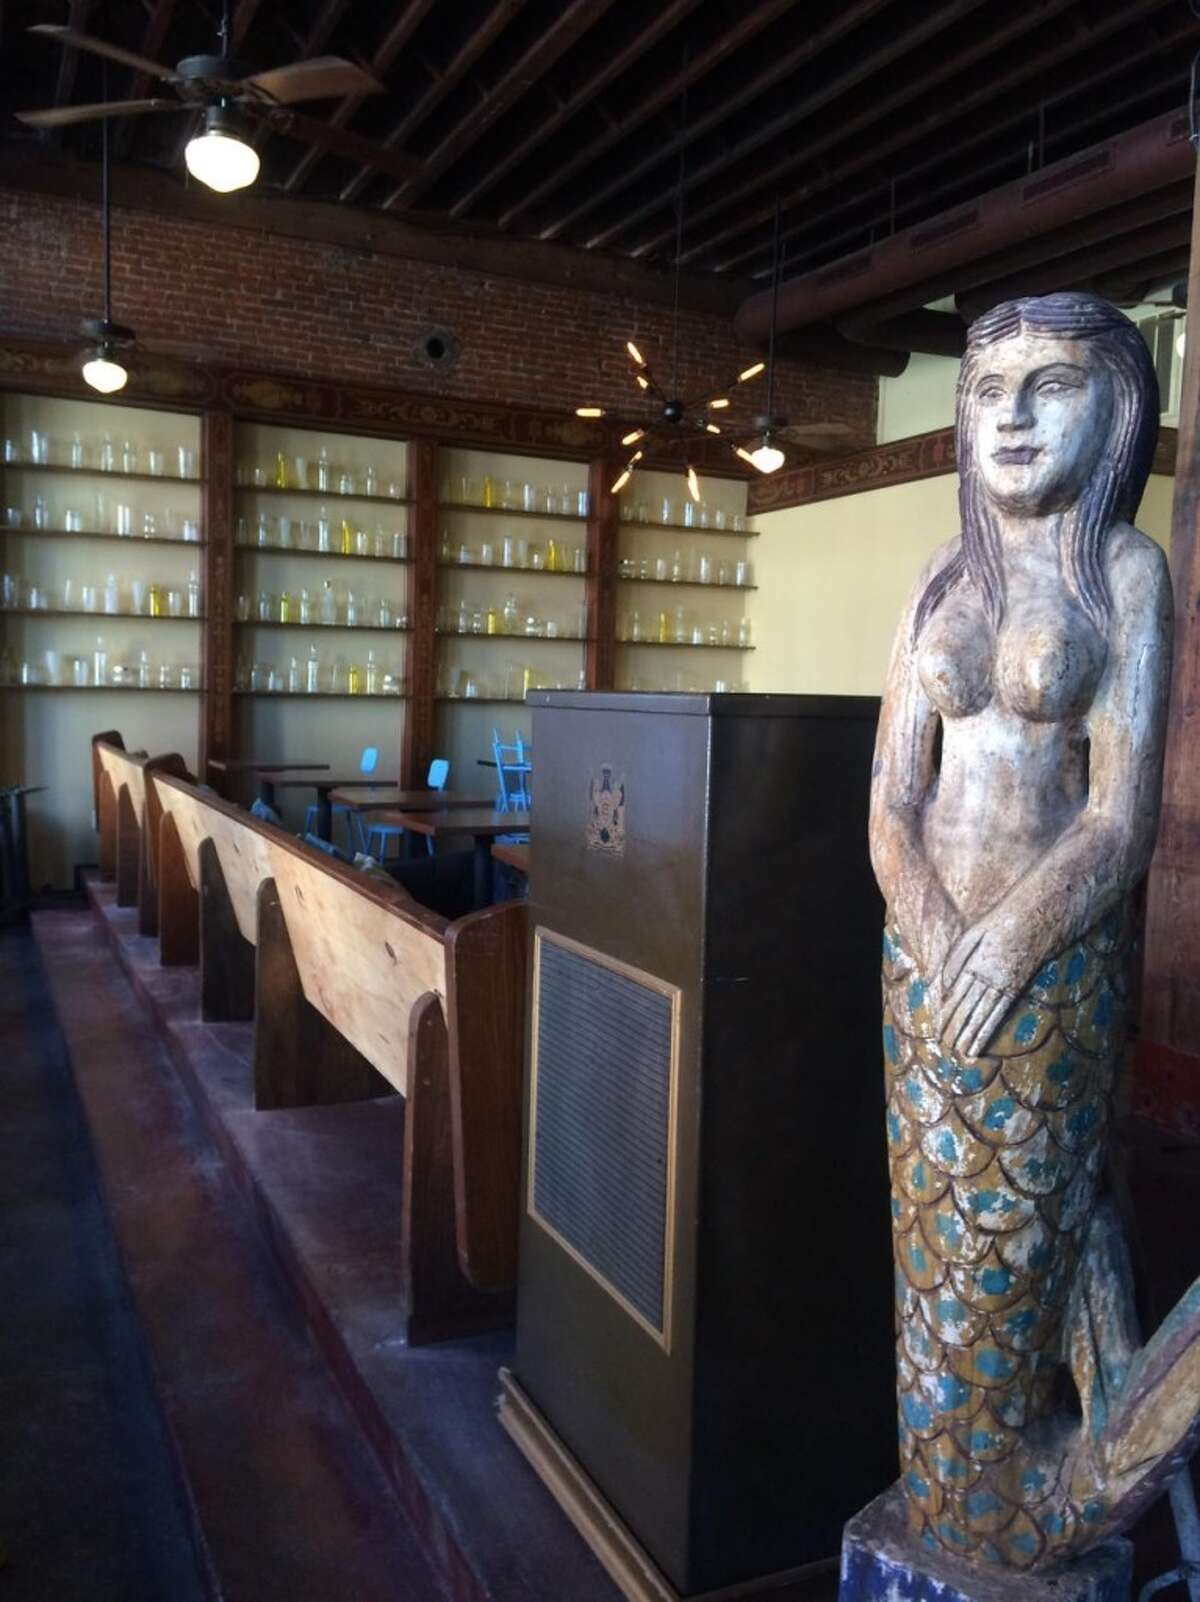 Harborside Mercantile (2021 Strand) serves up New Orleans-style food in a stylish historic space. Fresh seafood is served daily, and the drinks list is extensive.